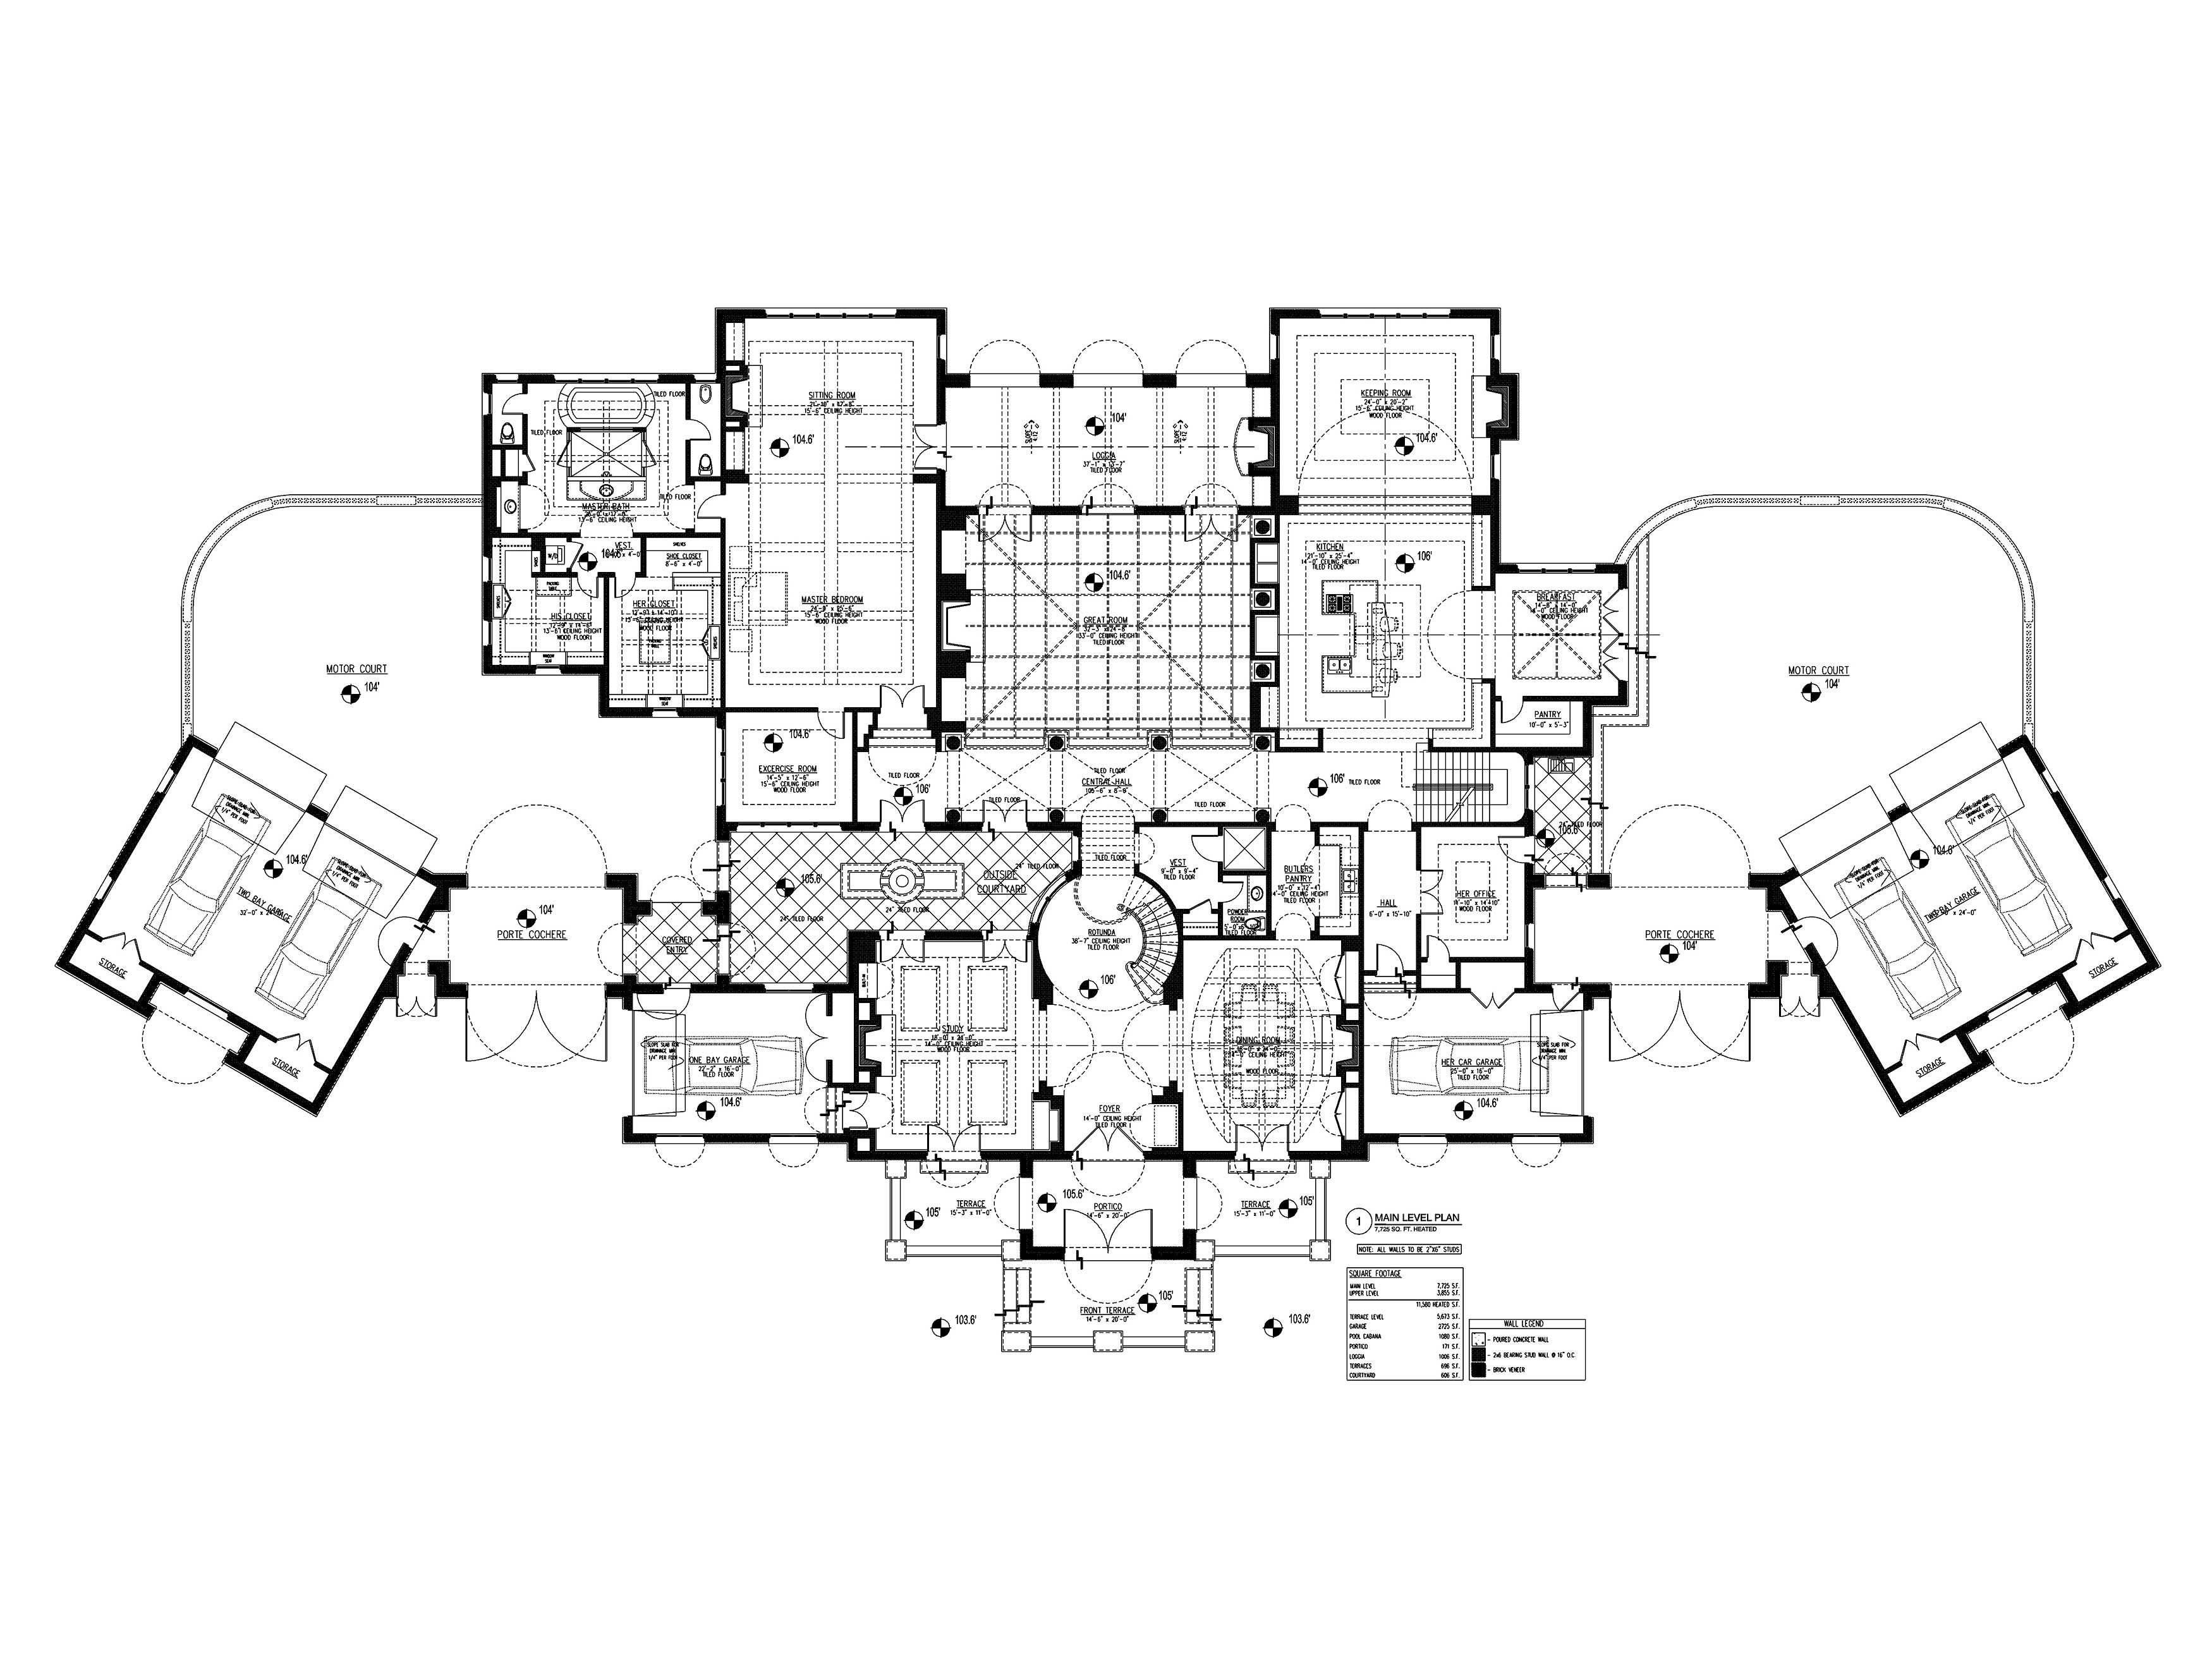 A Luxurious Mansion House Plan Brought To You By The Plan Collection Courtyard House Plans Mansion Floor Plan House Plans